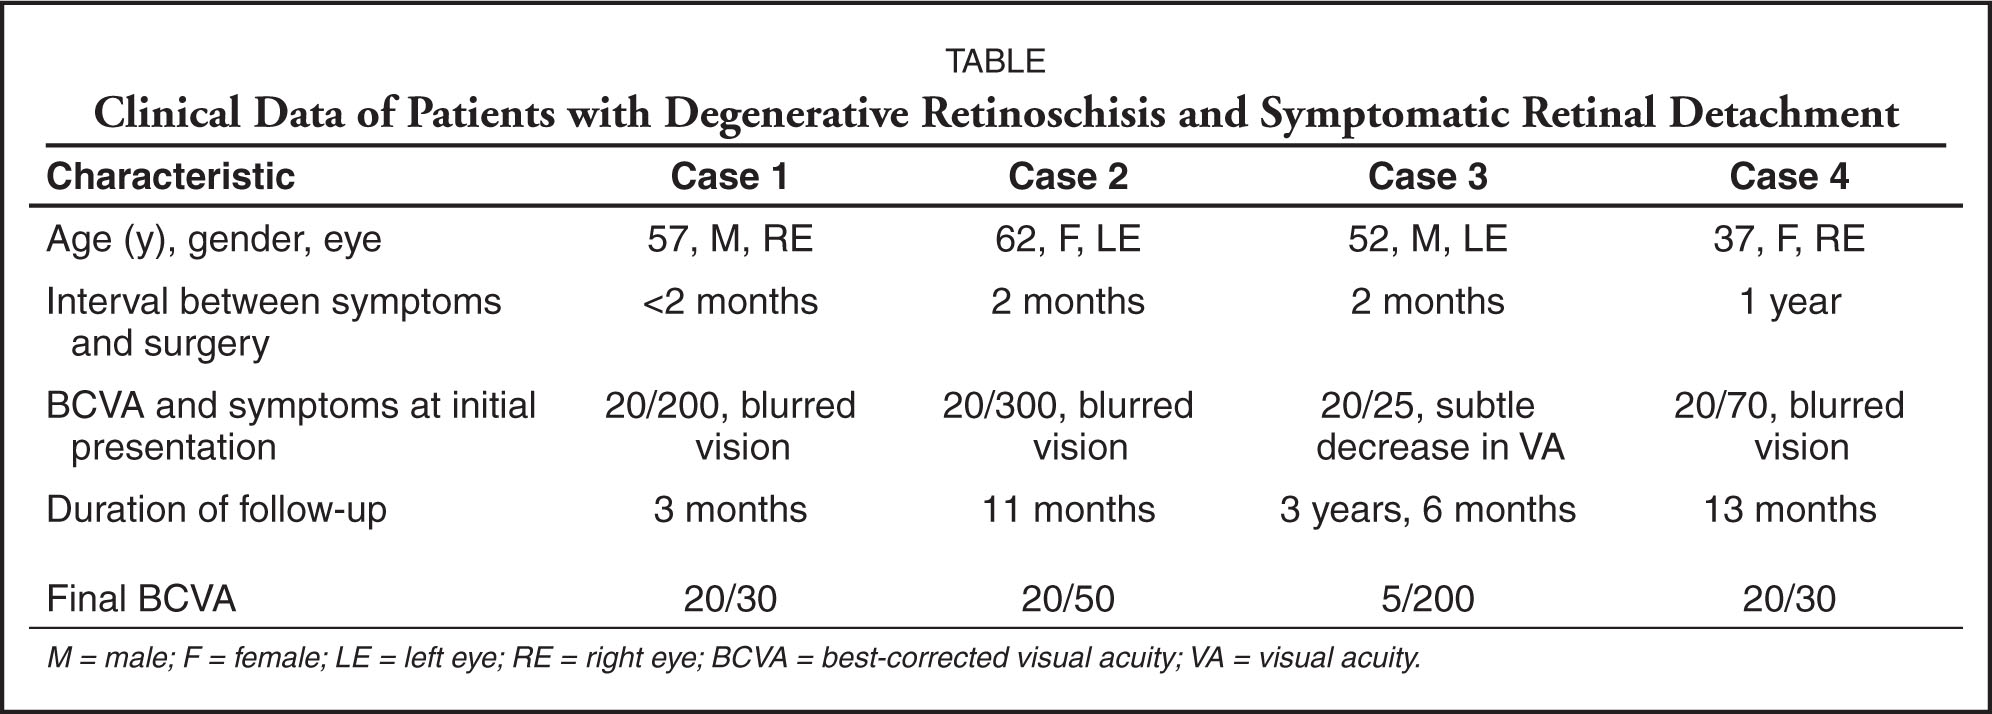 Clinical Data of Patients with Degenerative Retinoschisis and Symptomatic Retinal Detachment